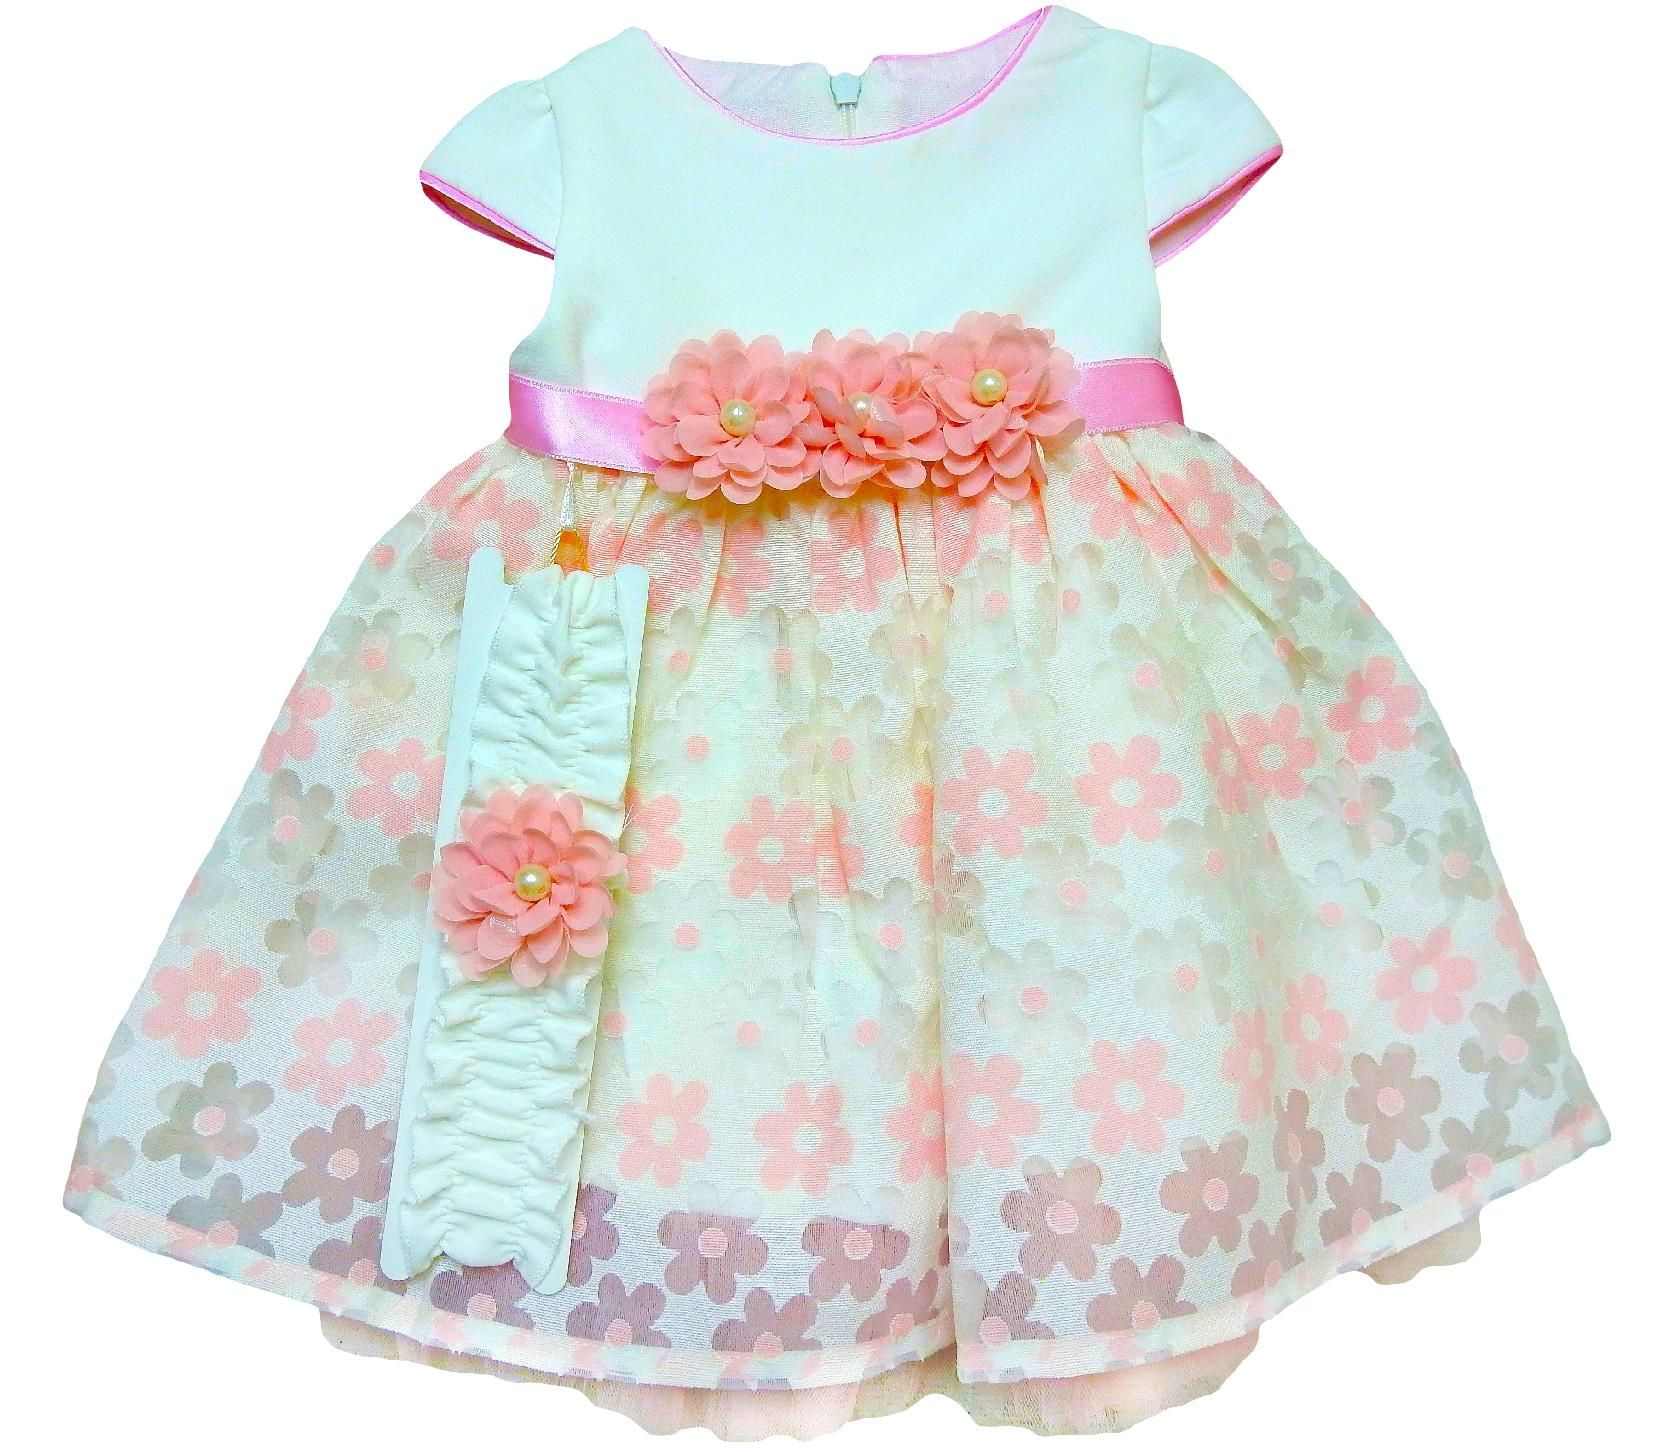 Wholesale Baby Clothes For Embroidery | Lauren Goss